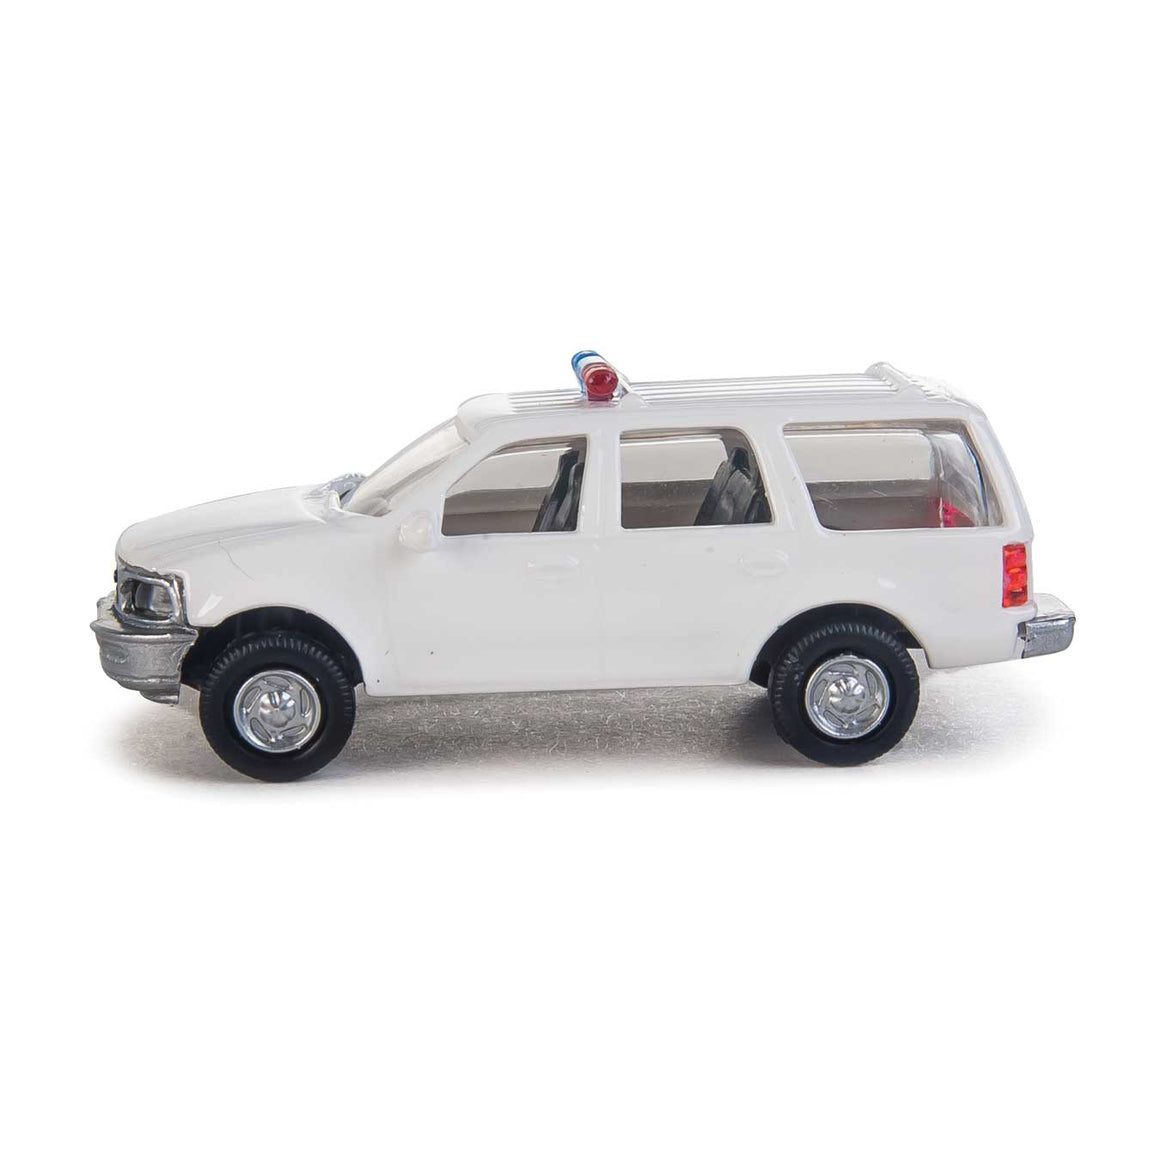 HO Scale: Ford® Expedition Service Vehicle - Police Agency